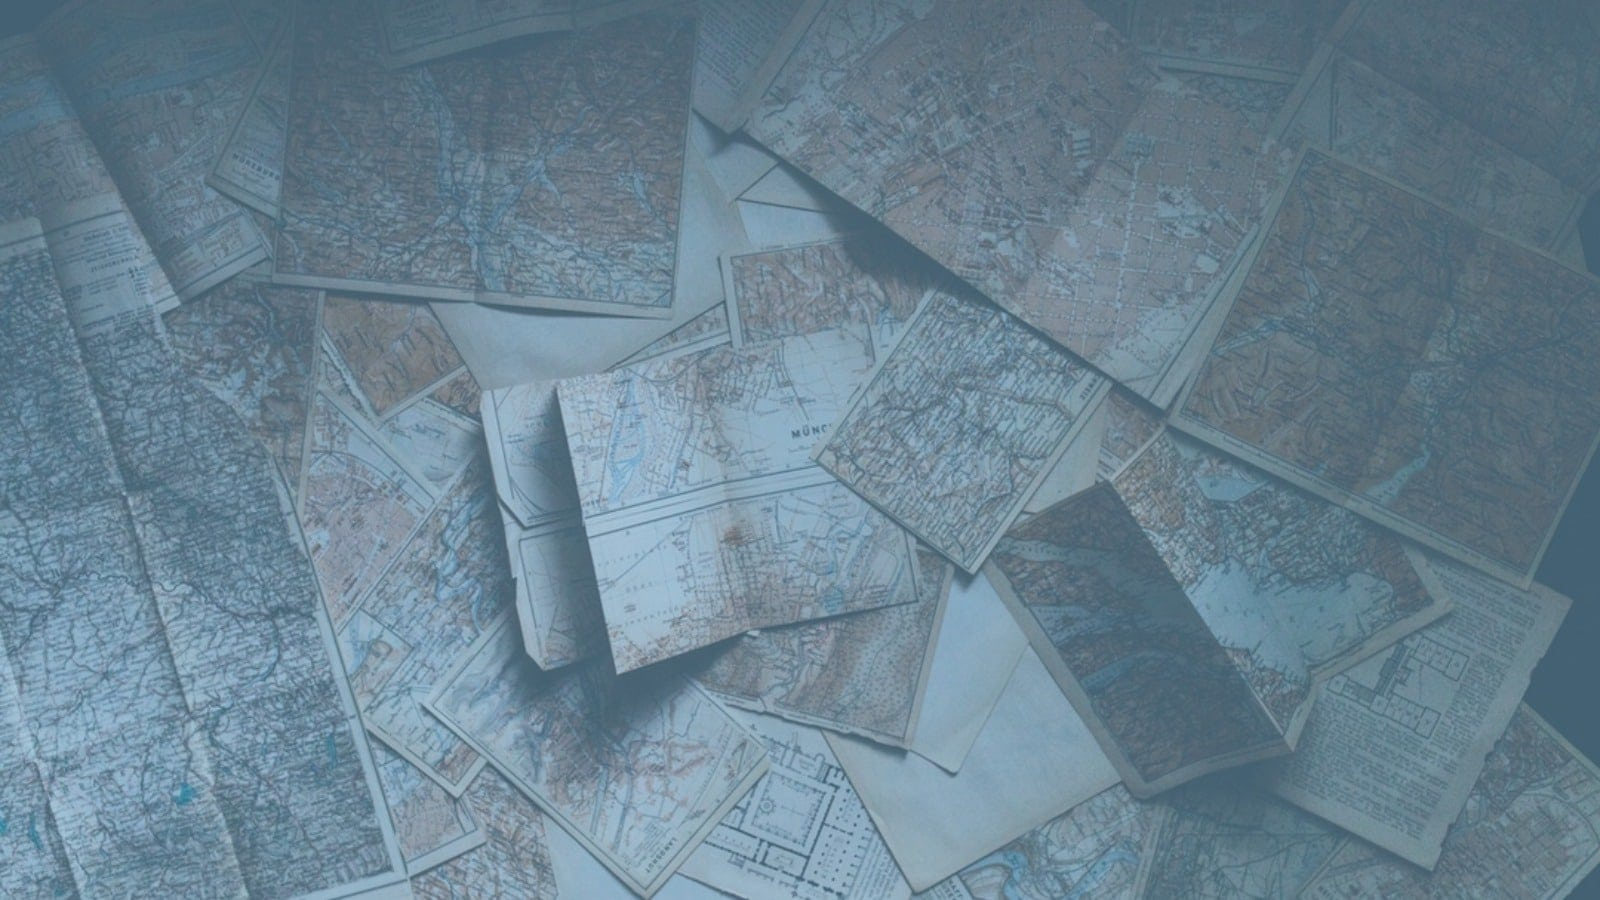 Career Coaching - Creating a Blueprint for Your Next Move